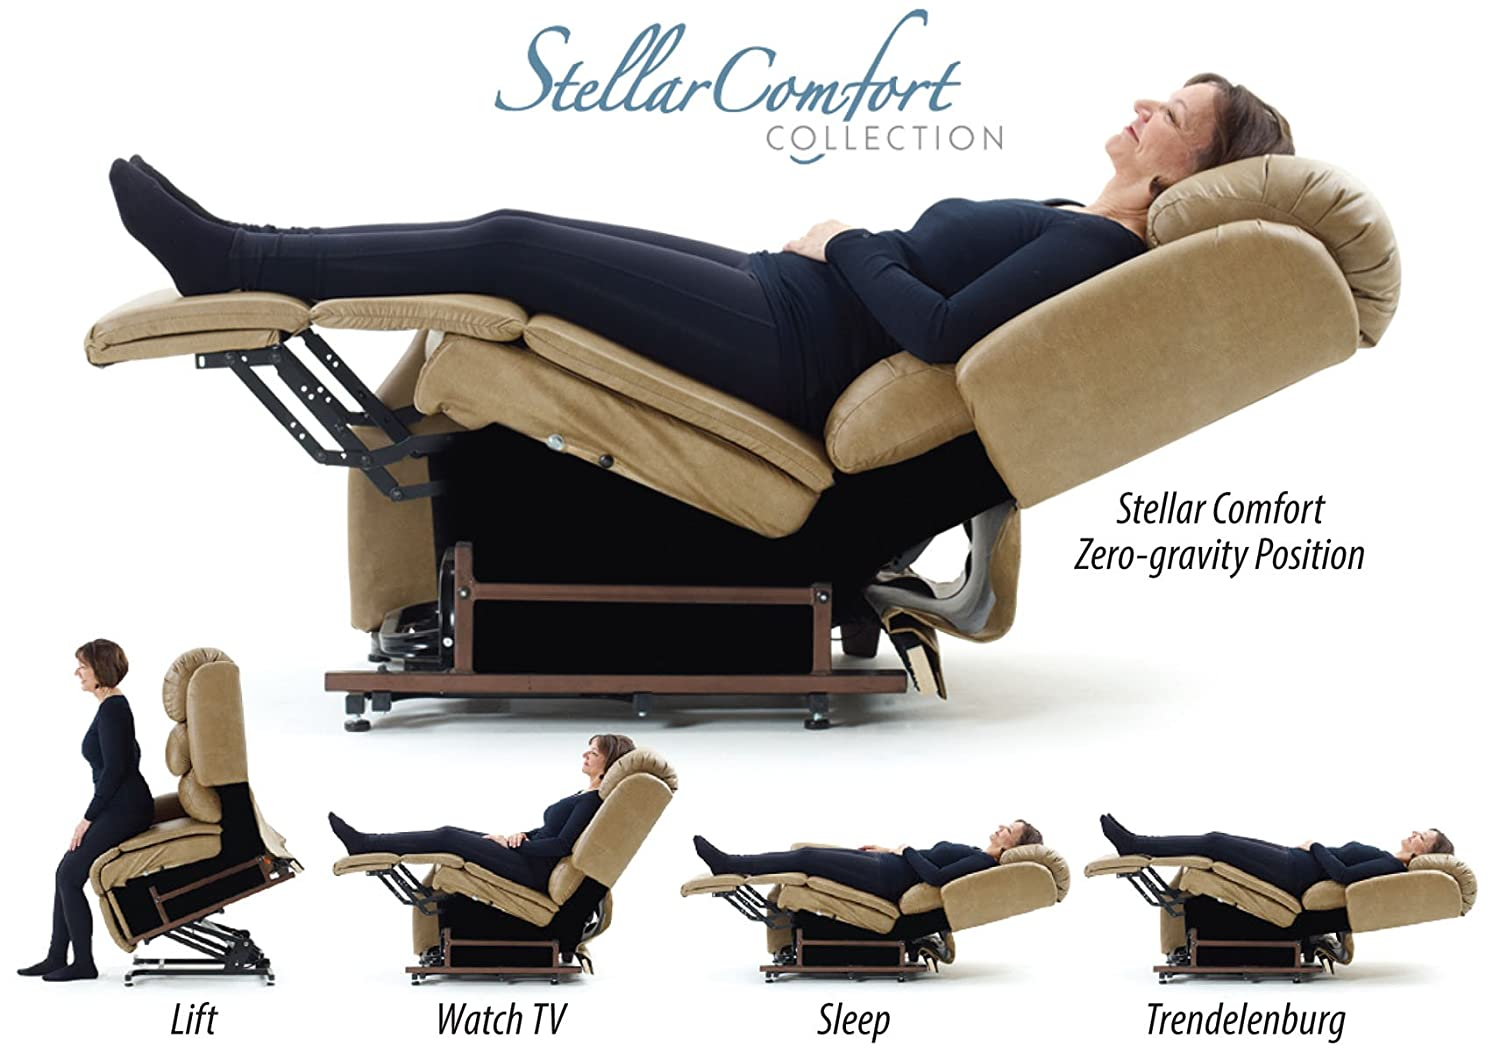 Amazon.com StellarComfort UC550-L Tall Zero Gravity Lift Chair Recliner - French Roast (Curbside Delivery) Health u0026 Personal Care  sc 1 st  Amazon.com : sleep recliner chair - islam-shia.org